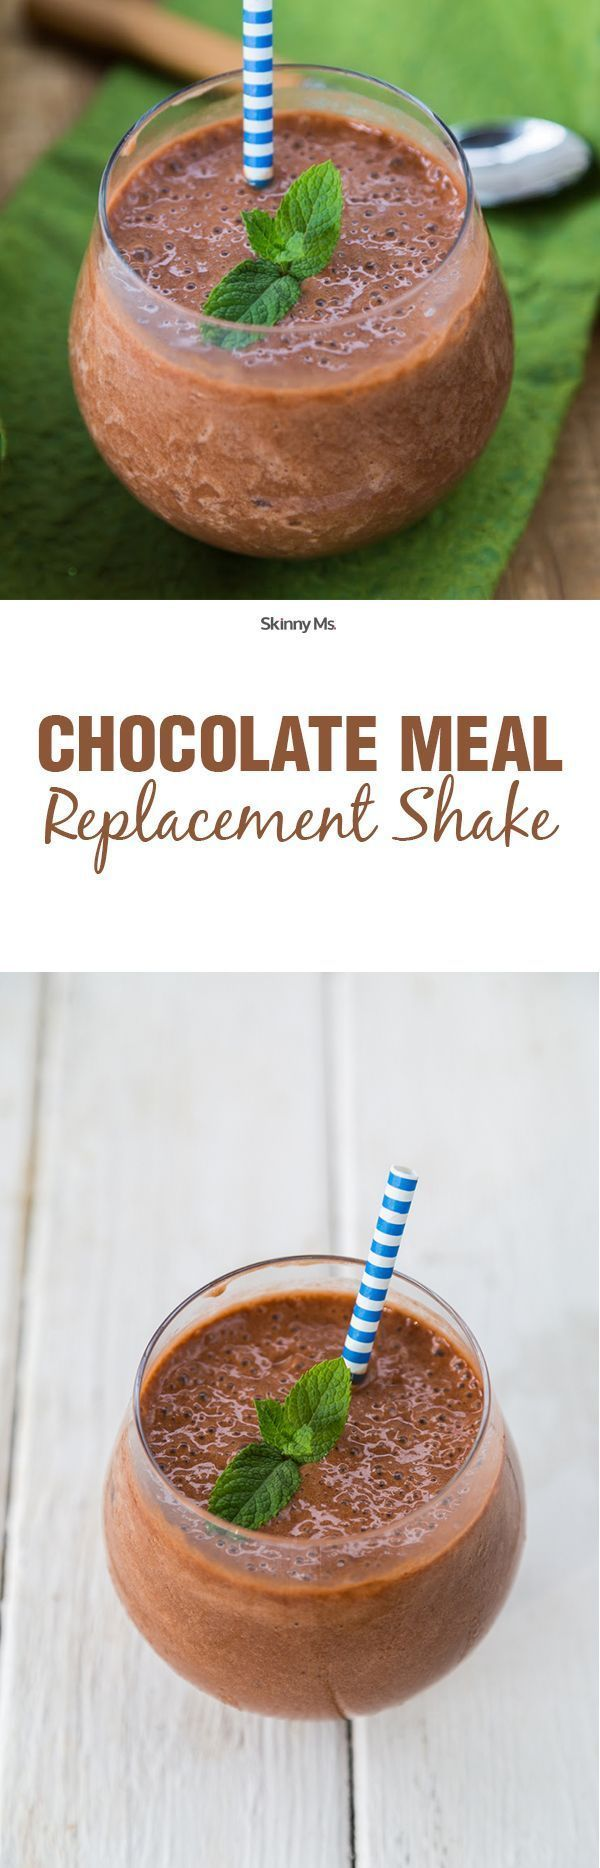 Chocolate Meal Replacement Shake - The perfect thing to grab when you're in a pinch!